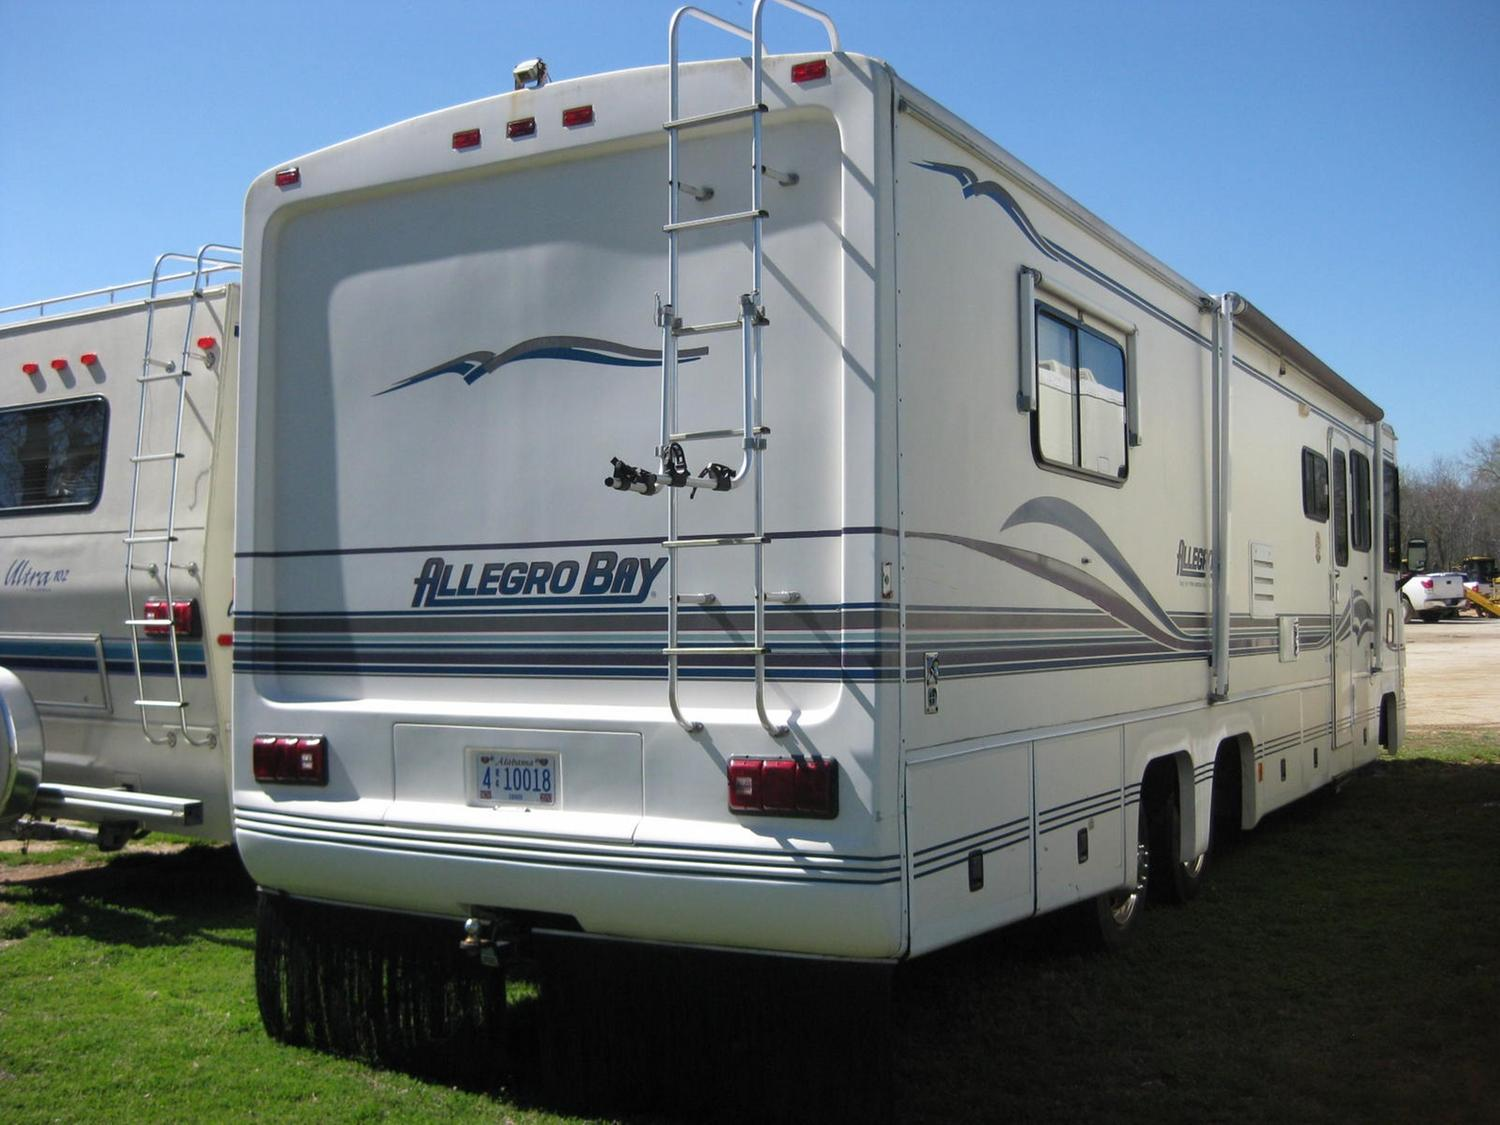 1997 allegro bay class a motor home j m wood auction for Allegro home